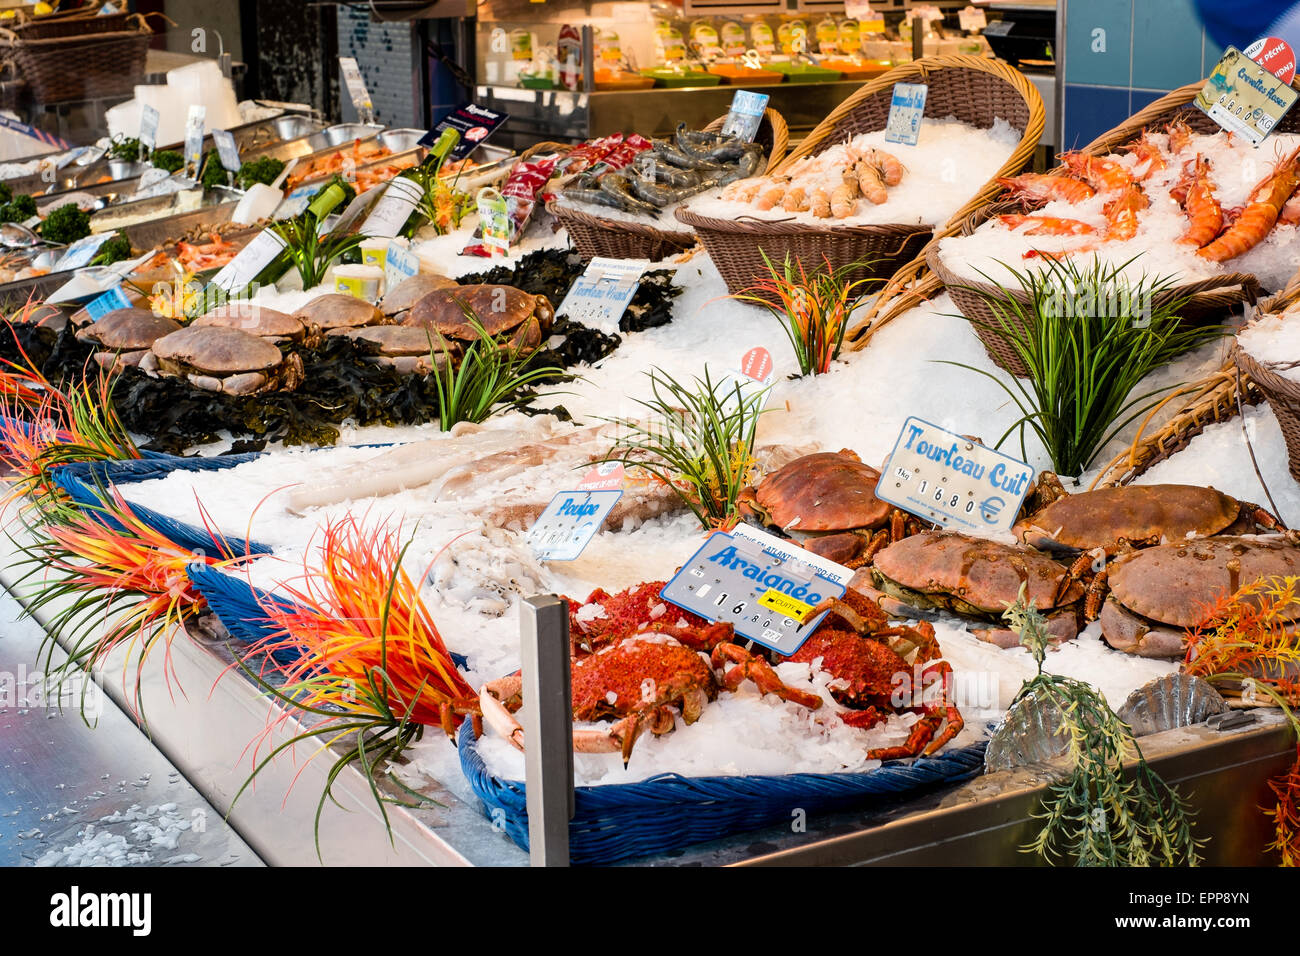 Sea food and shellfish on sale in Rue Mouffetard, Paris - Stock Image